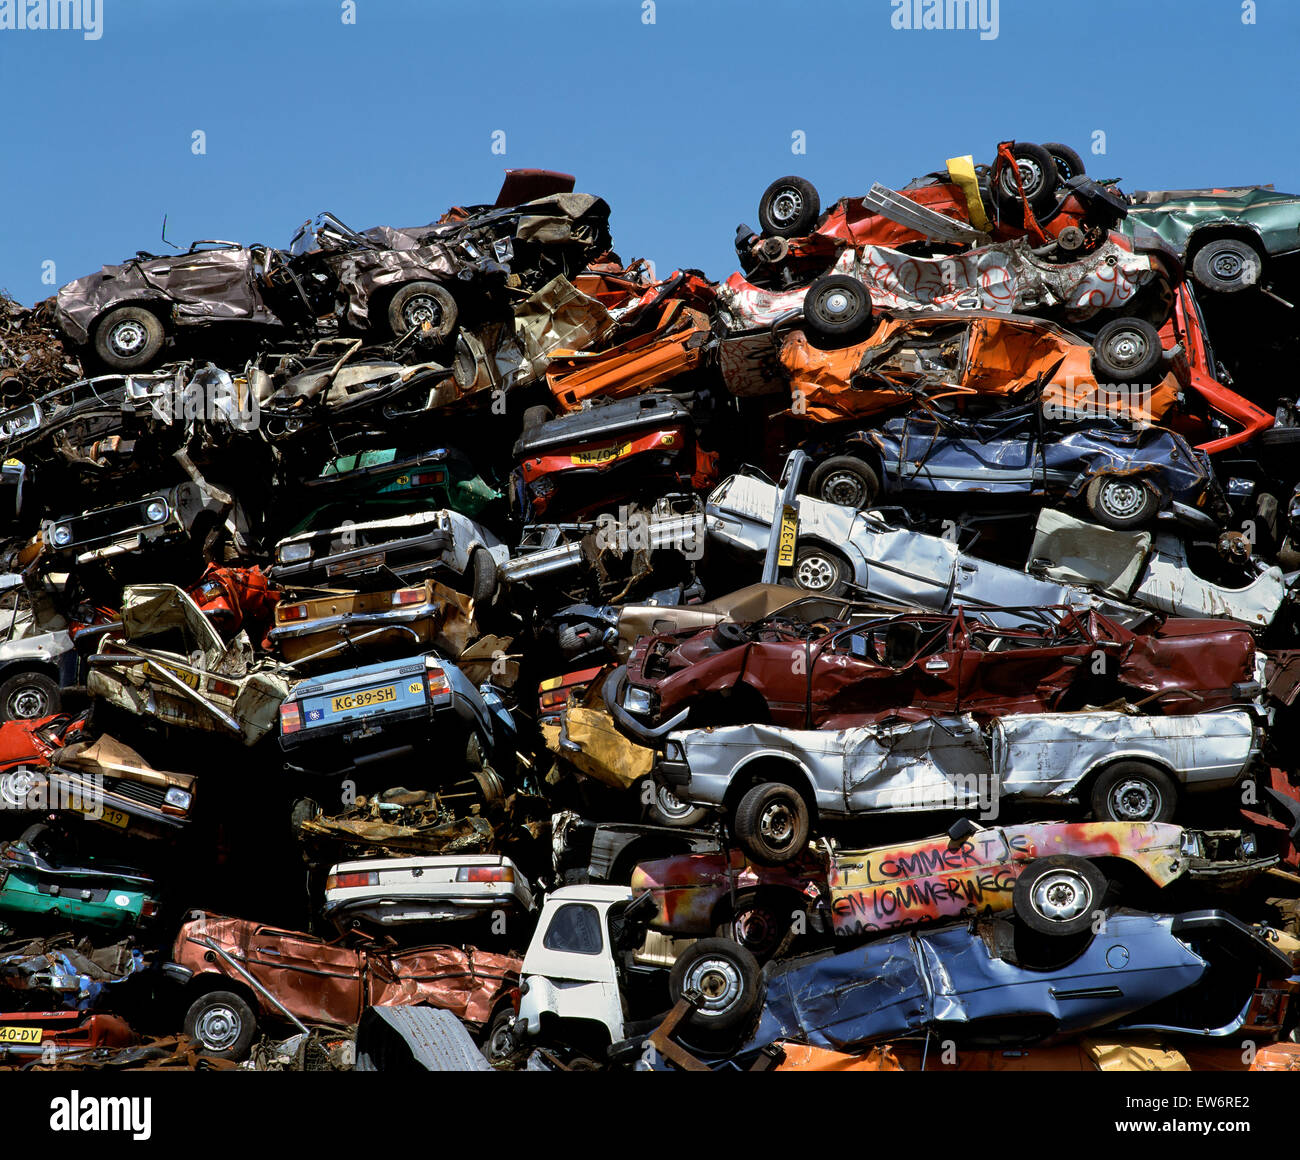 Wreckers Yard Stock Photos & Wreckers Yard Stock Images - Alamy